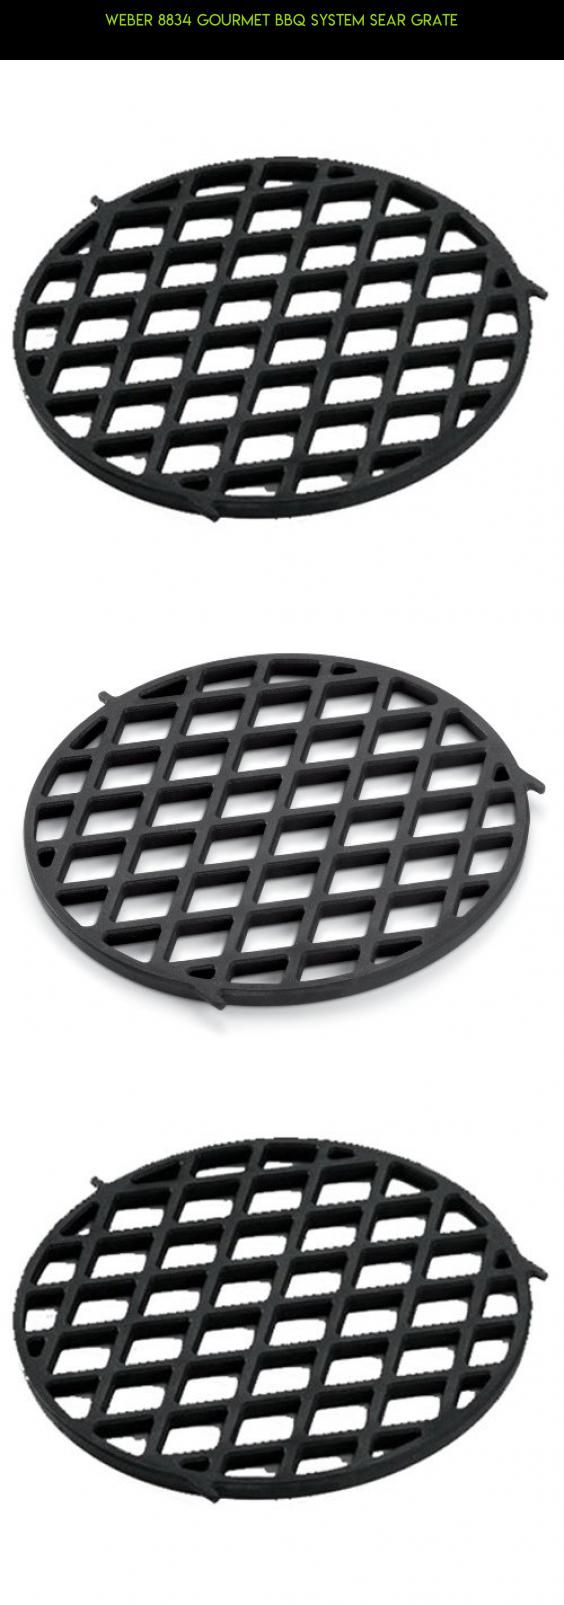 Weber 8834 Gourmet BBQ System Sear Grate #kit #tech #camera #racing #grills #fpv #drone #products #technology #accessories #shopping #plans #parts #gadgets #weber